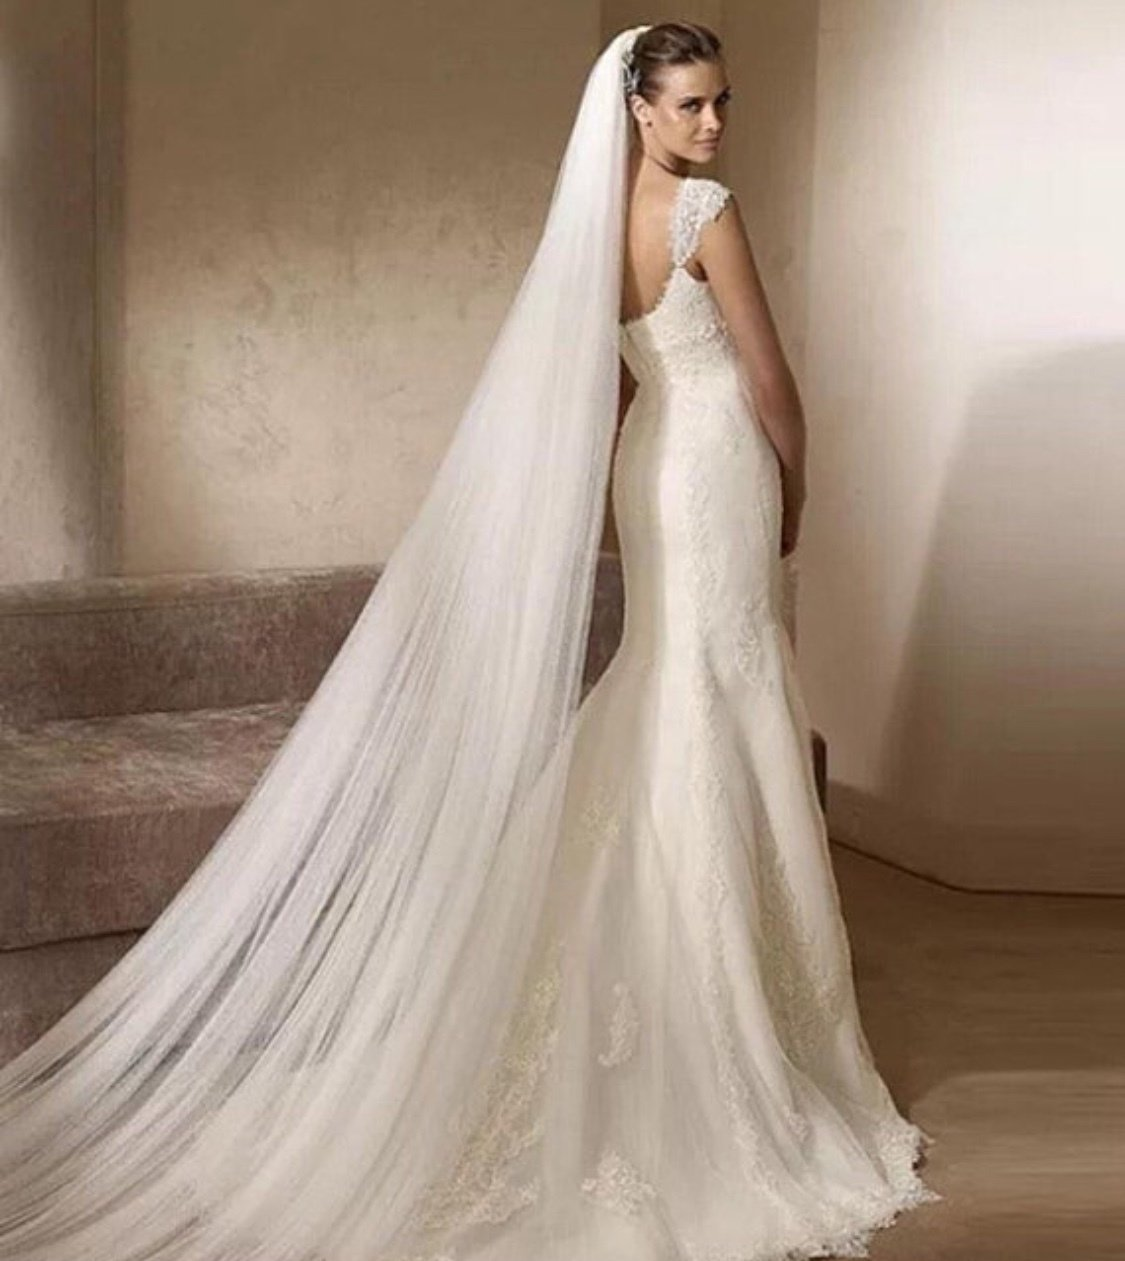 White/Ivory 6ft/2m 10 ft/3M 16ft/5m 2T tier two layer with comb cathedral wedding veil